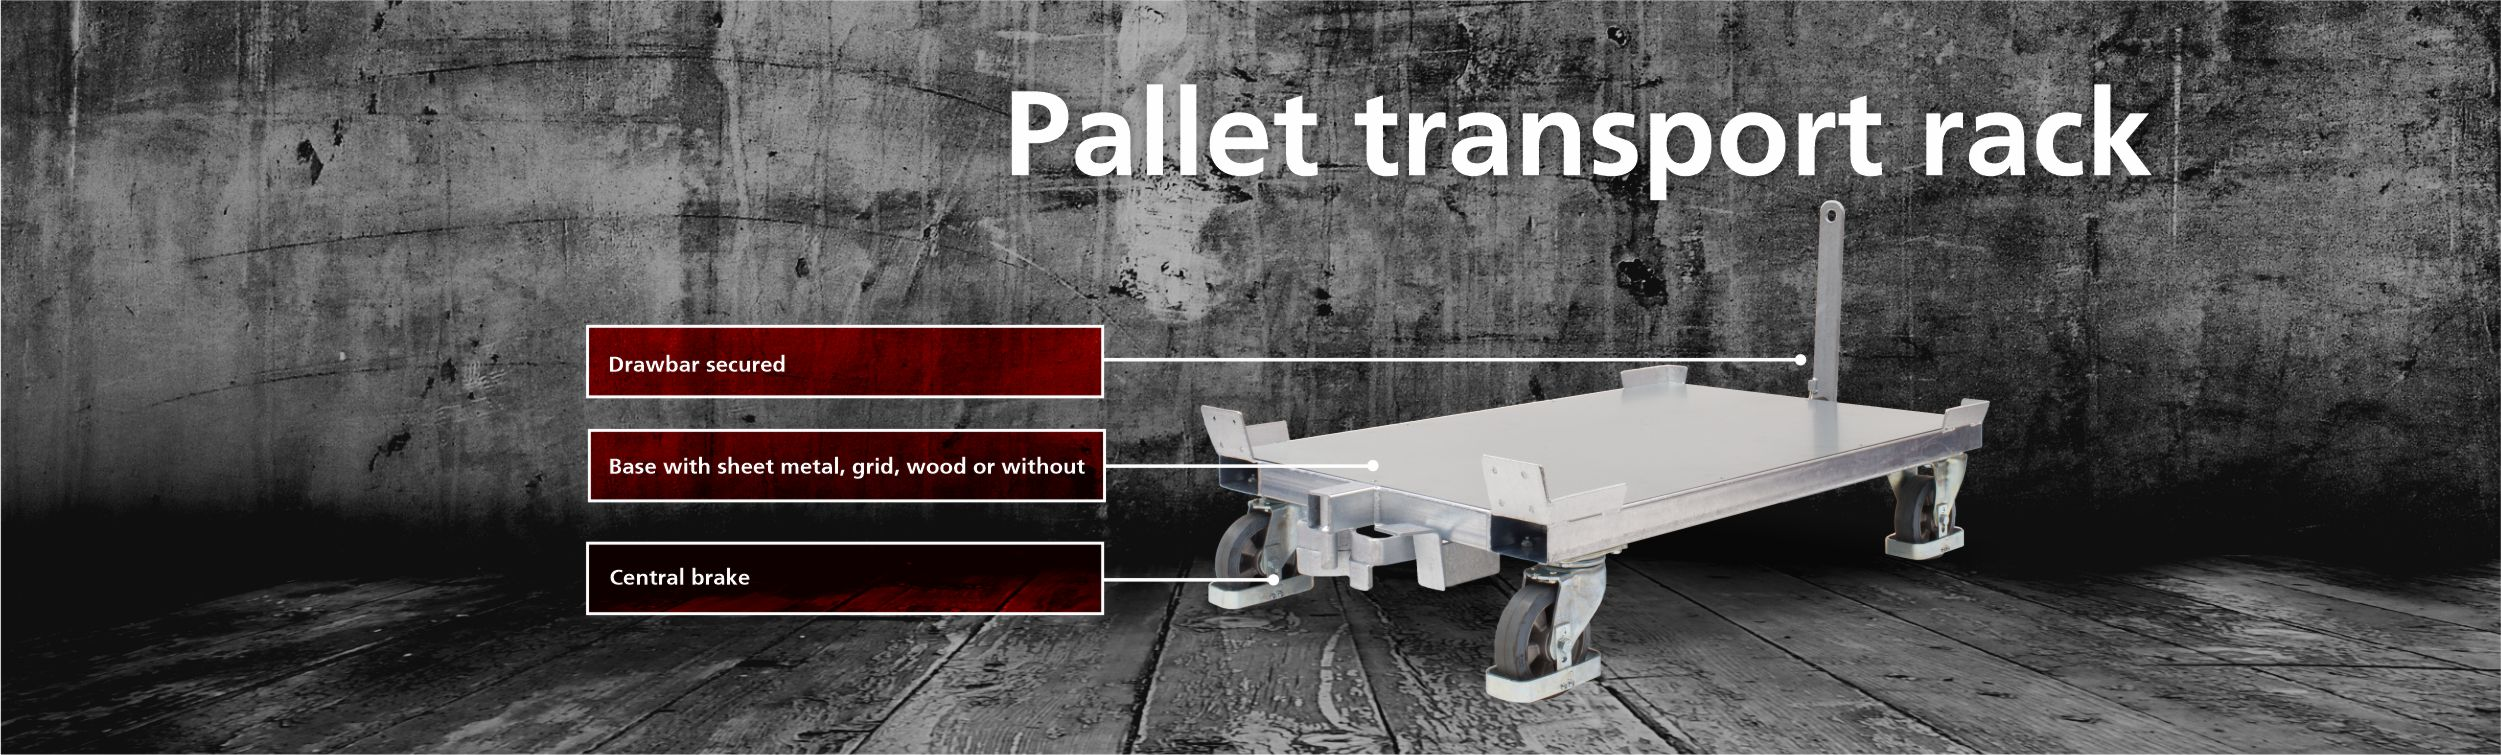 pallet_transport_rack